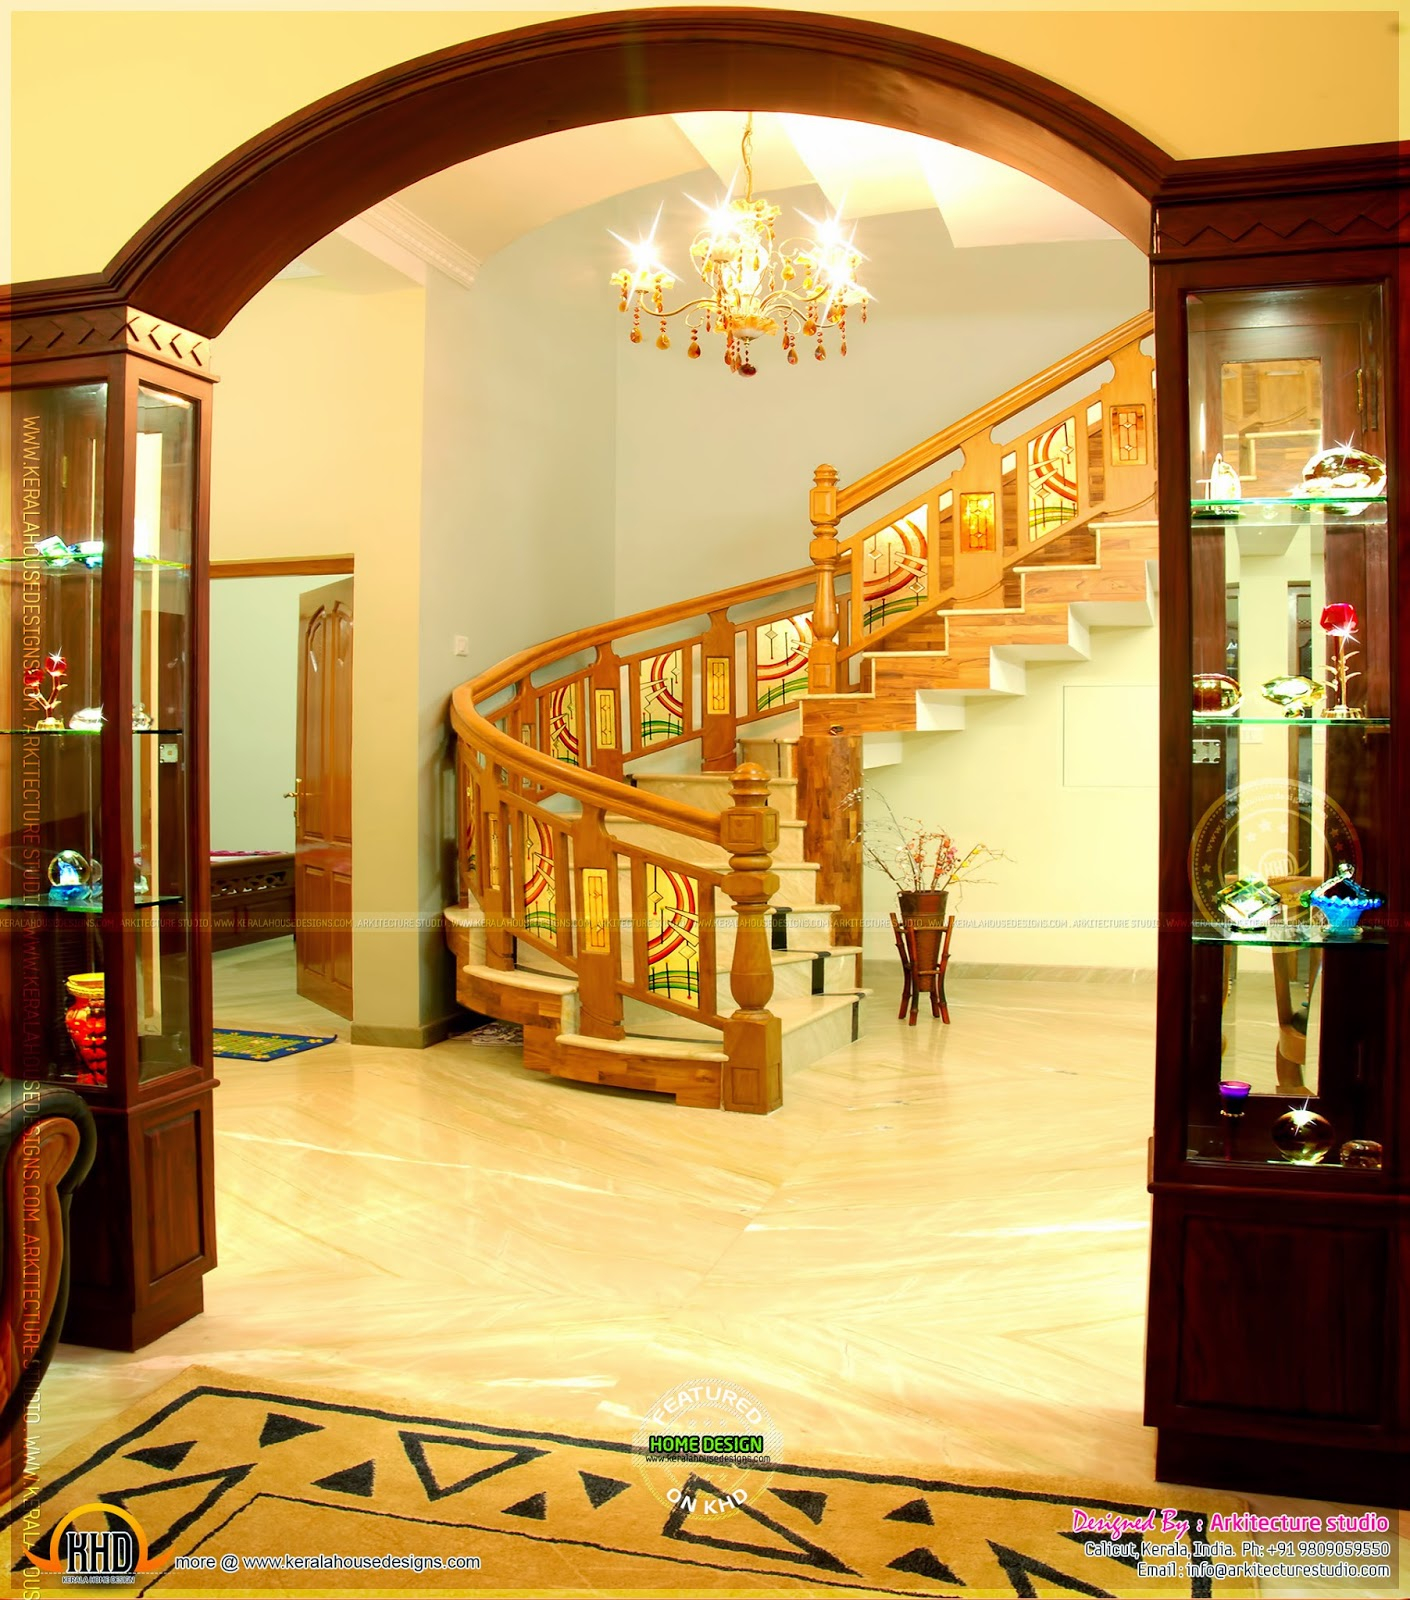 Real house in kerala with interior photos kerala home for Home inside decoration photos